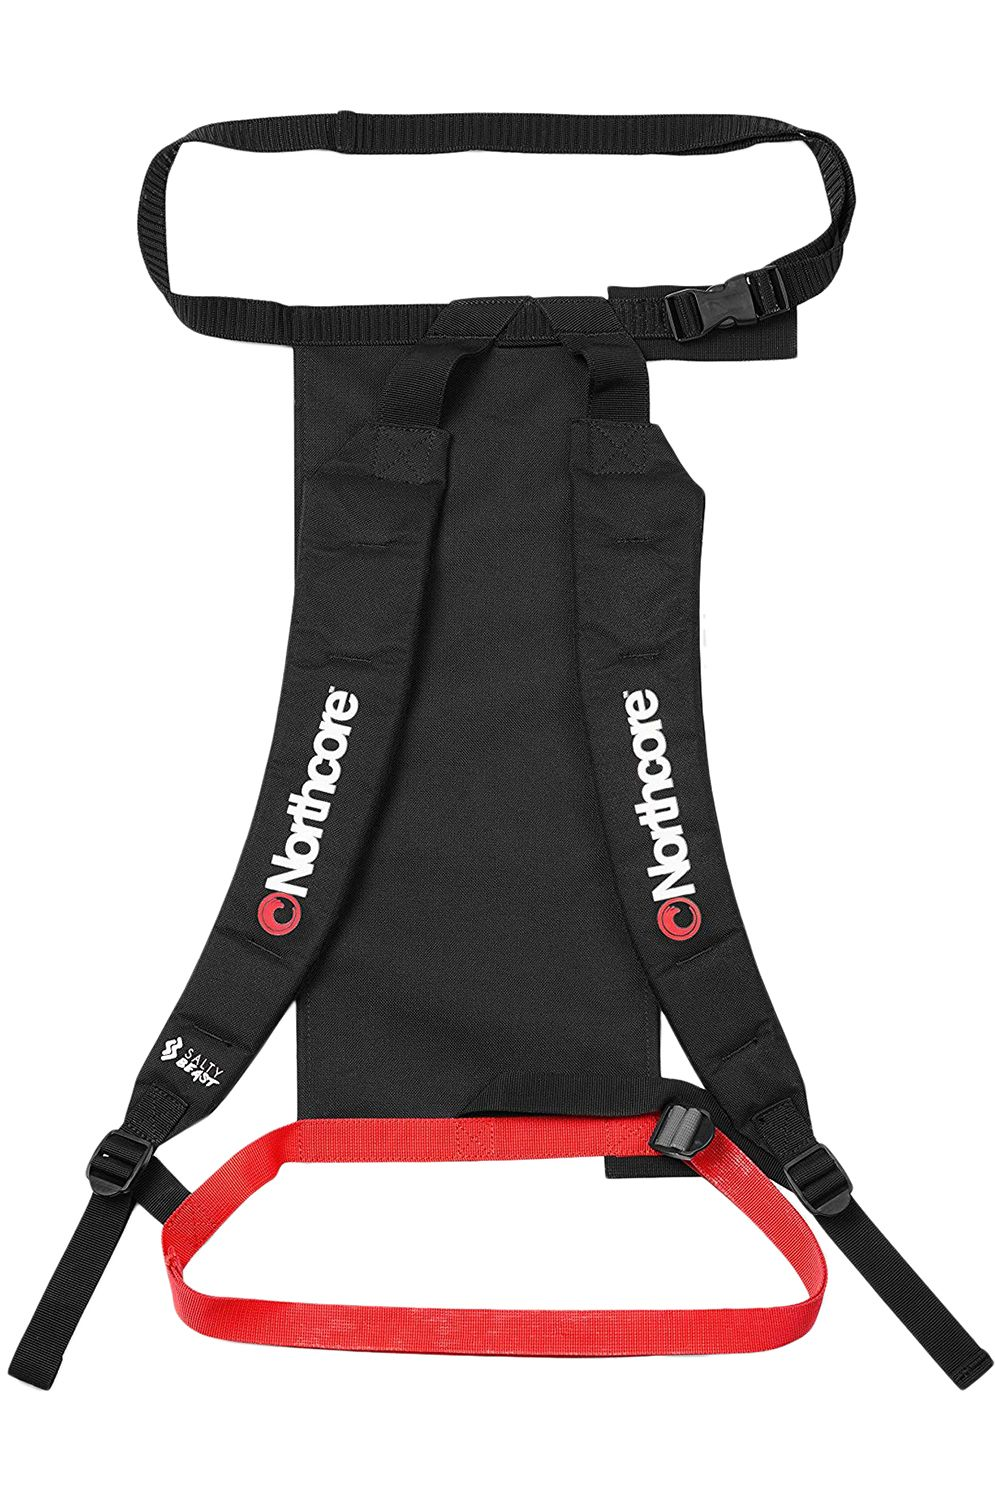 Rack Northcore SURF STRAP- BOARD CARRY Assorted